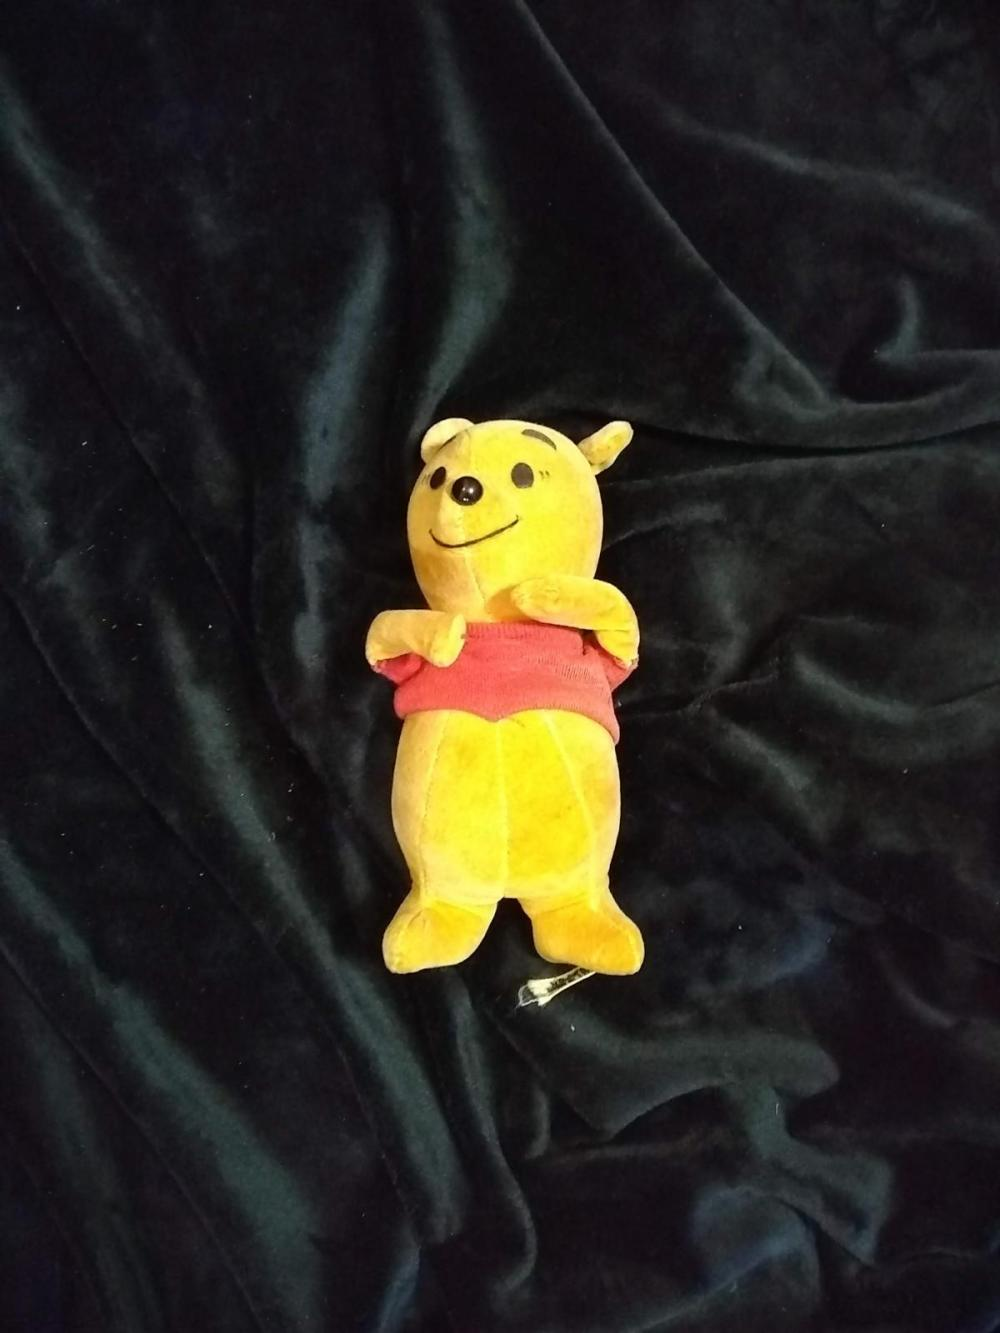 Vintage 1954 Japan Stuffed Animal - Winnie the Pooh